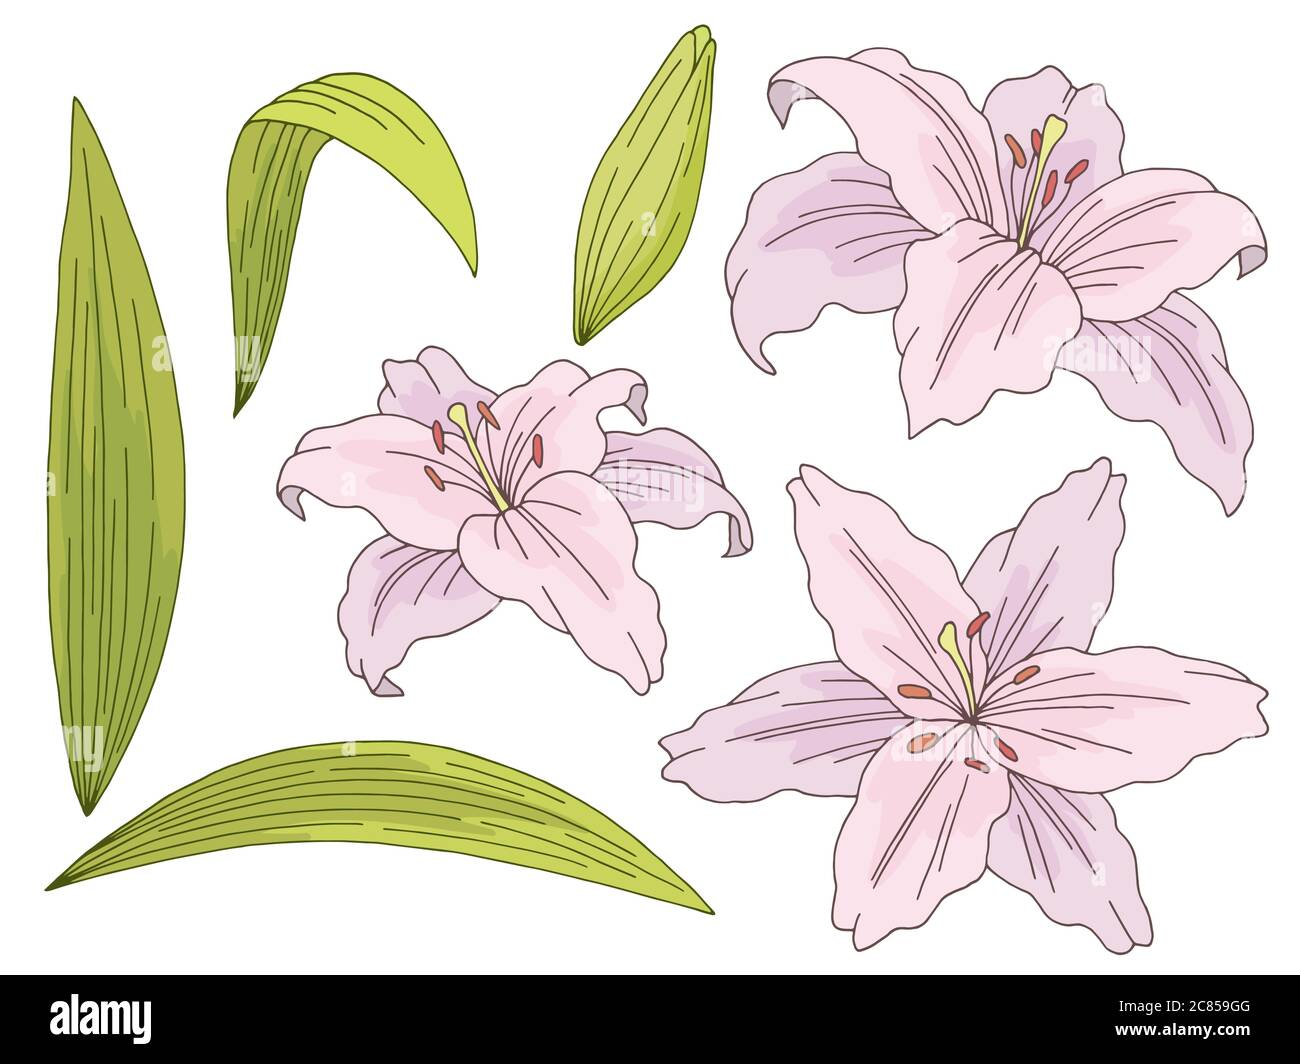 Lily Flower Graphic Color Isolated Sketch Set Illustration Vector Stock Vector Image Art Alamy